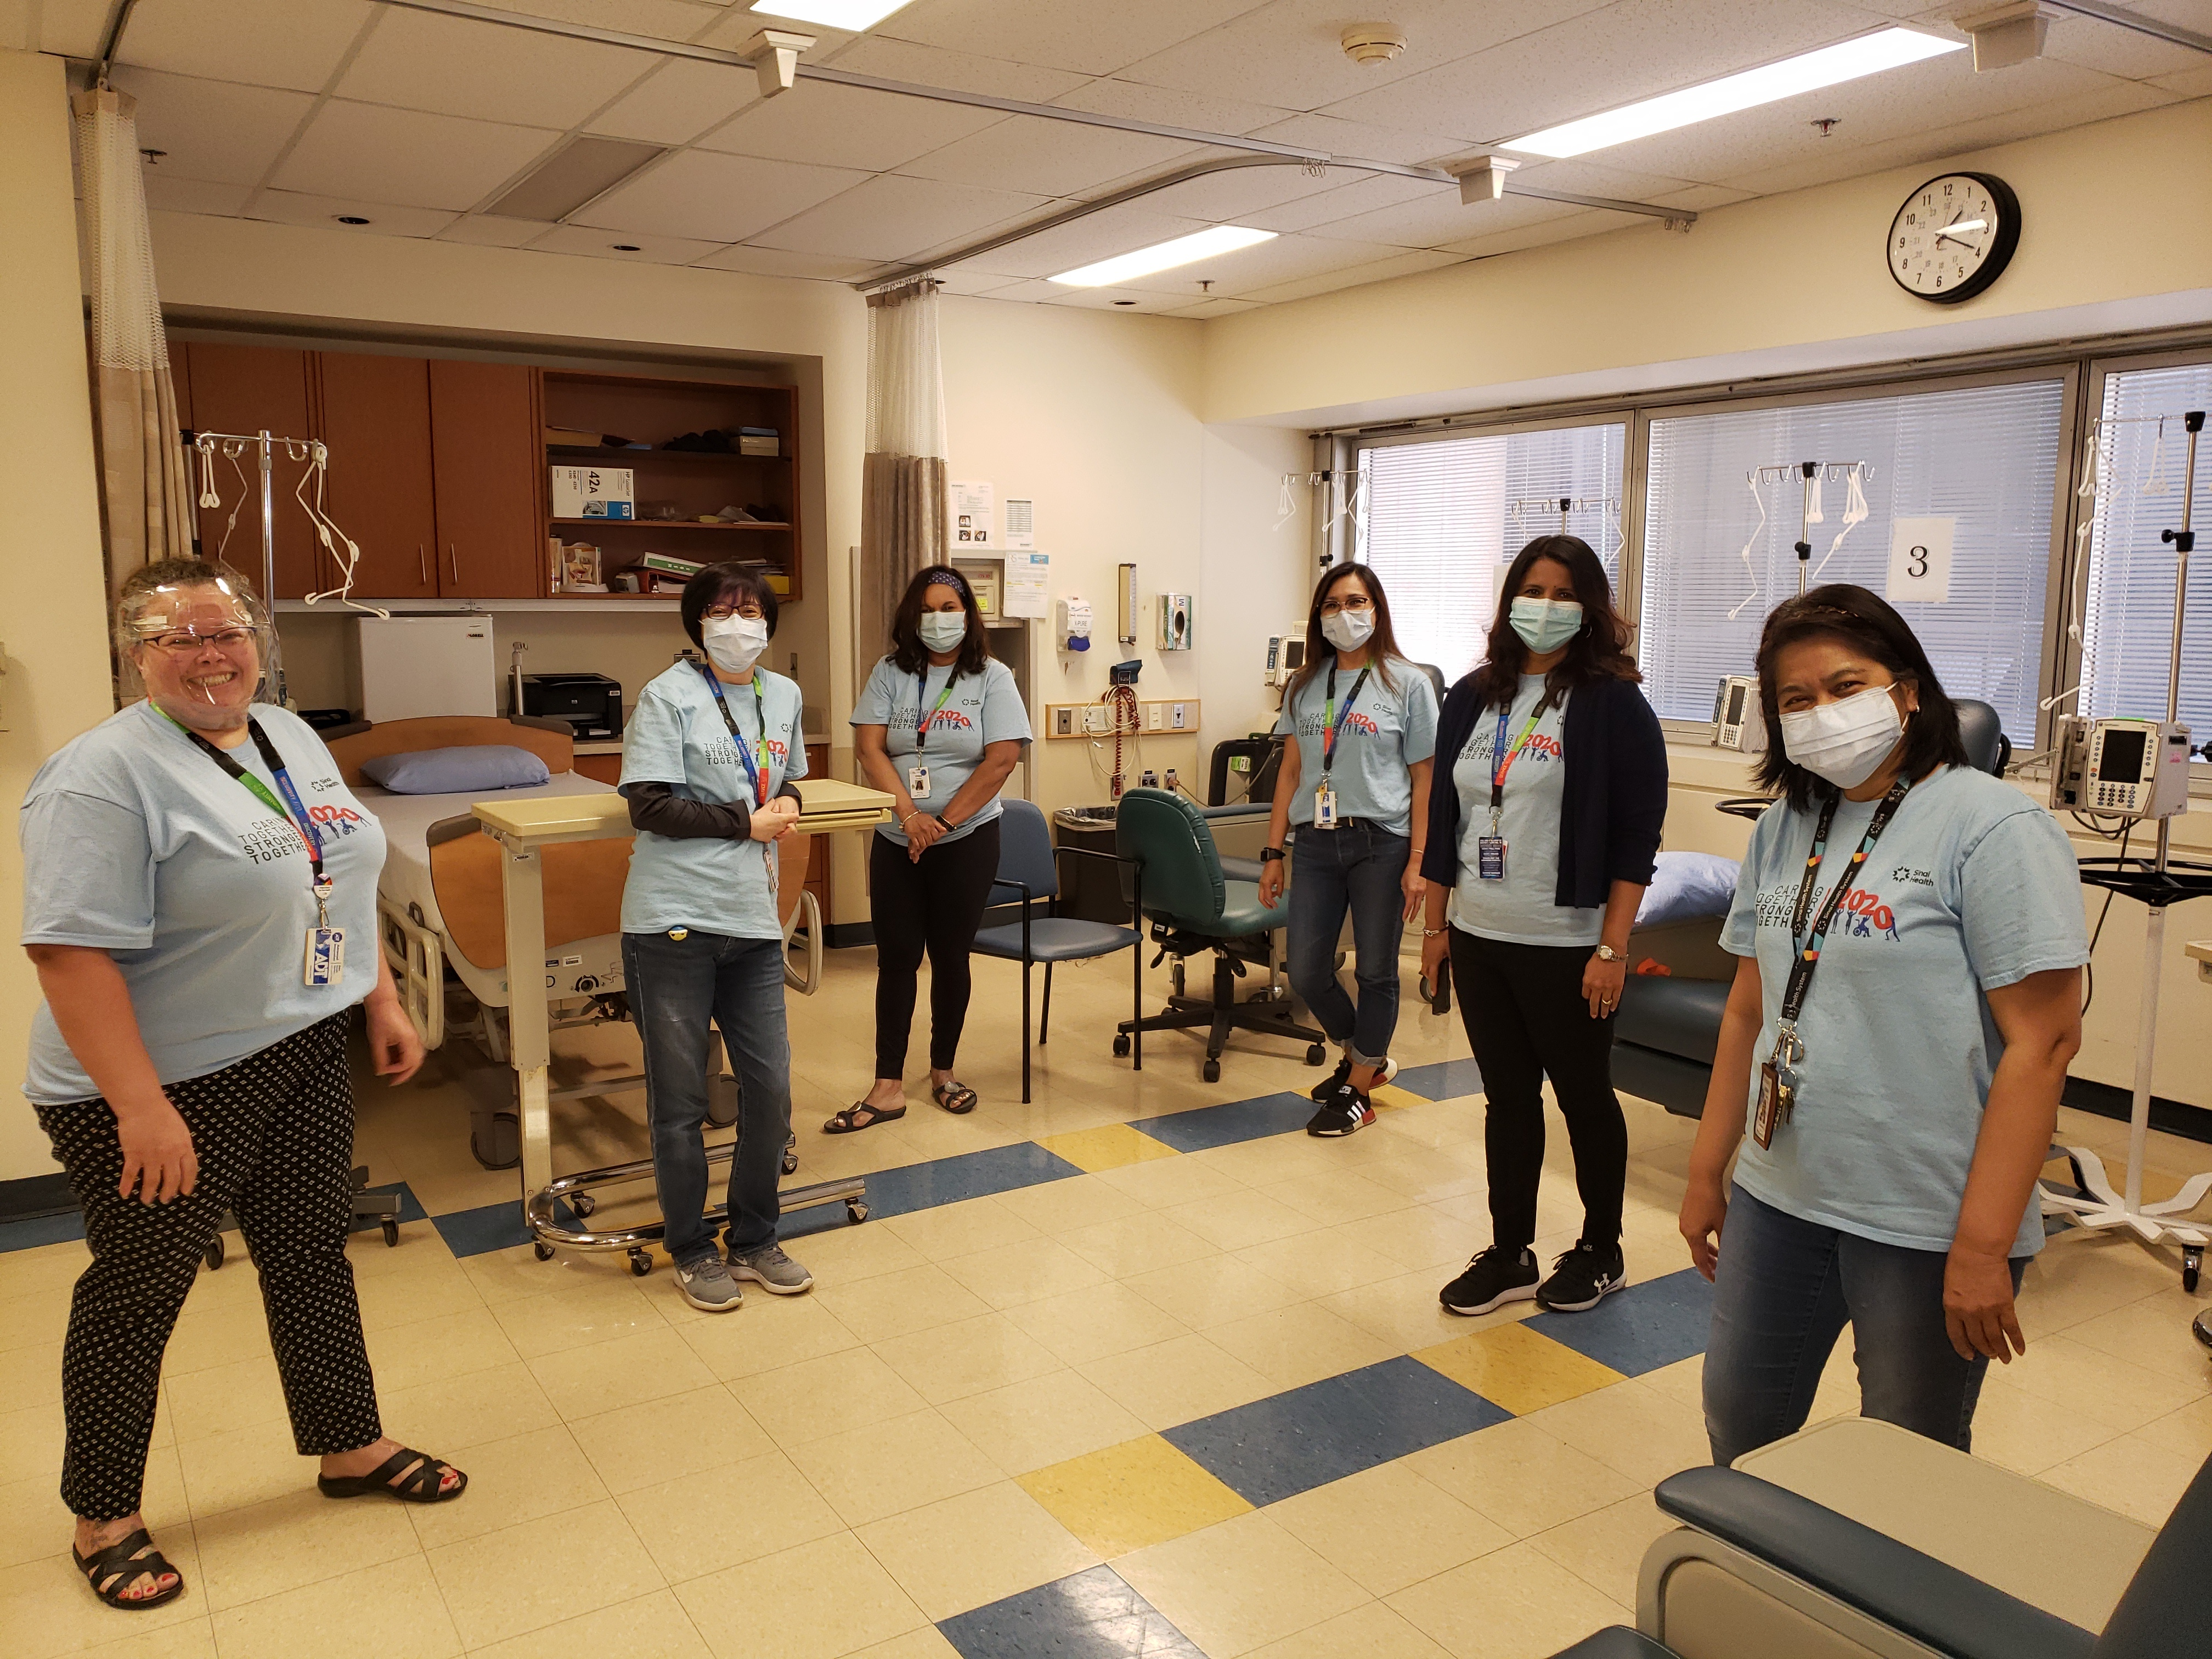 hospital employees wearing the same shirt and procedure masks standing in a hospital unit facing the camera.